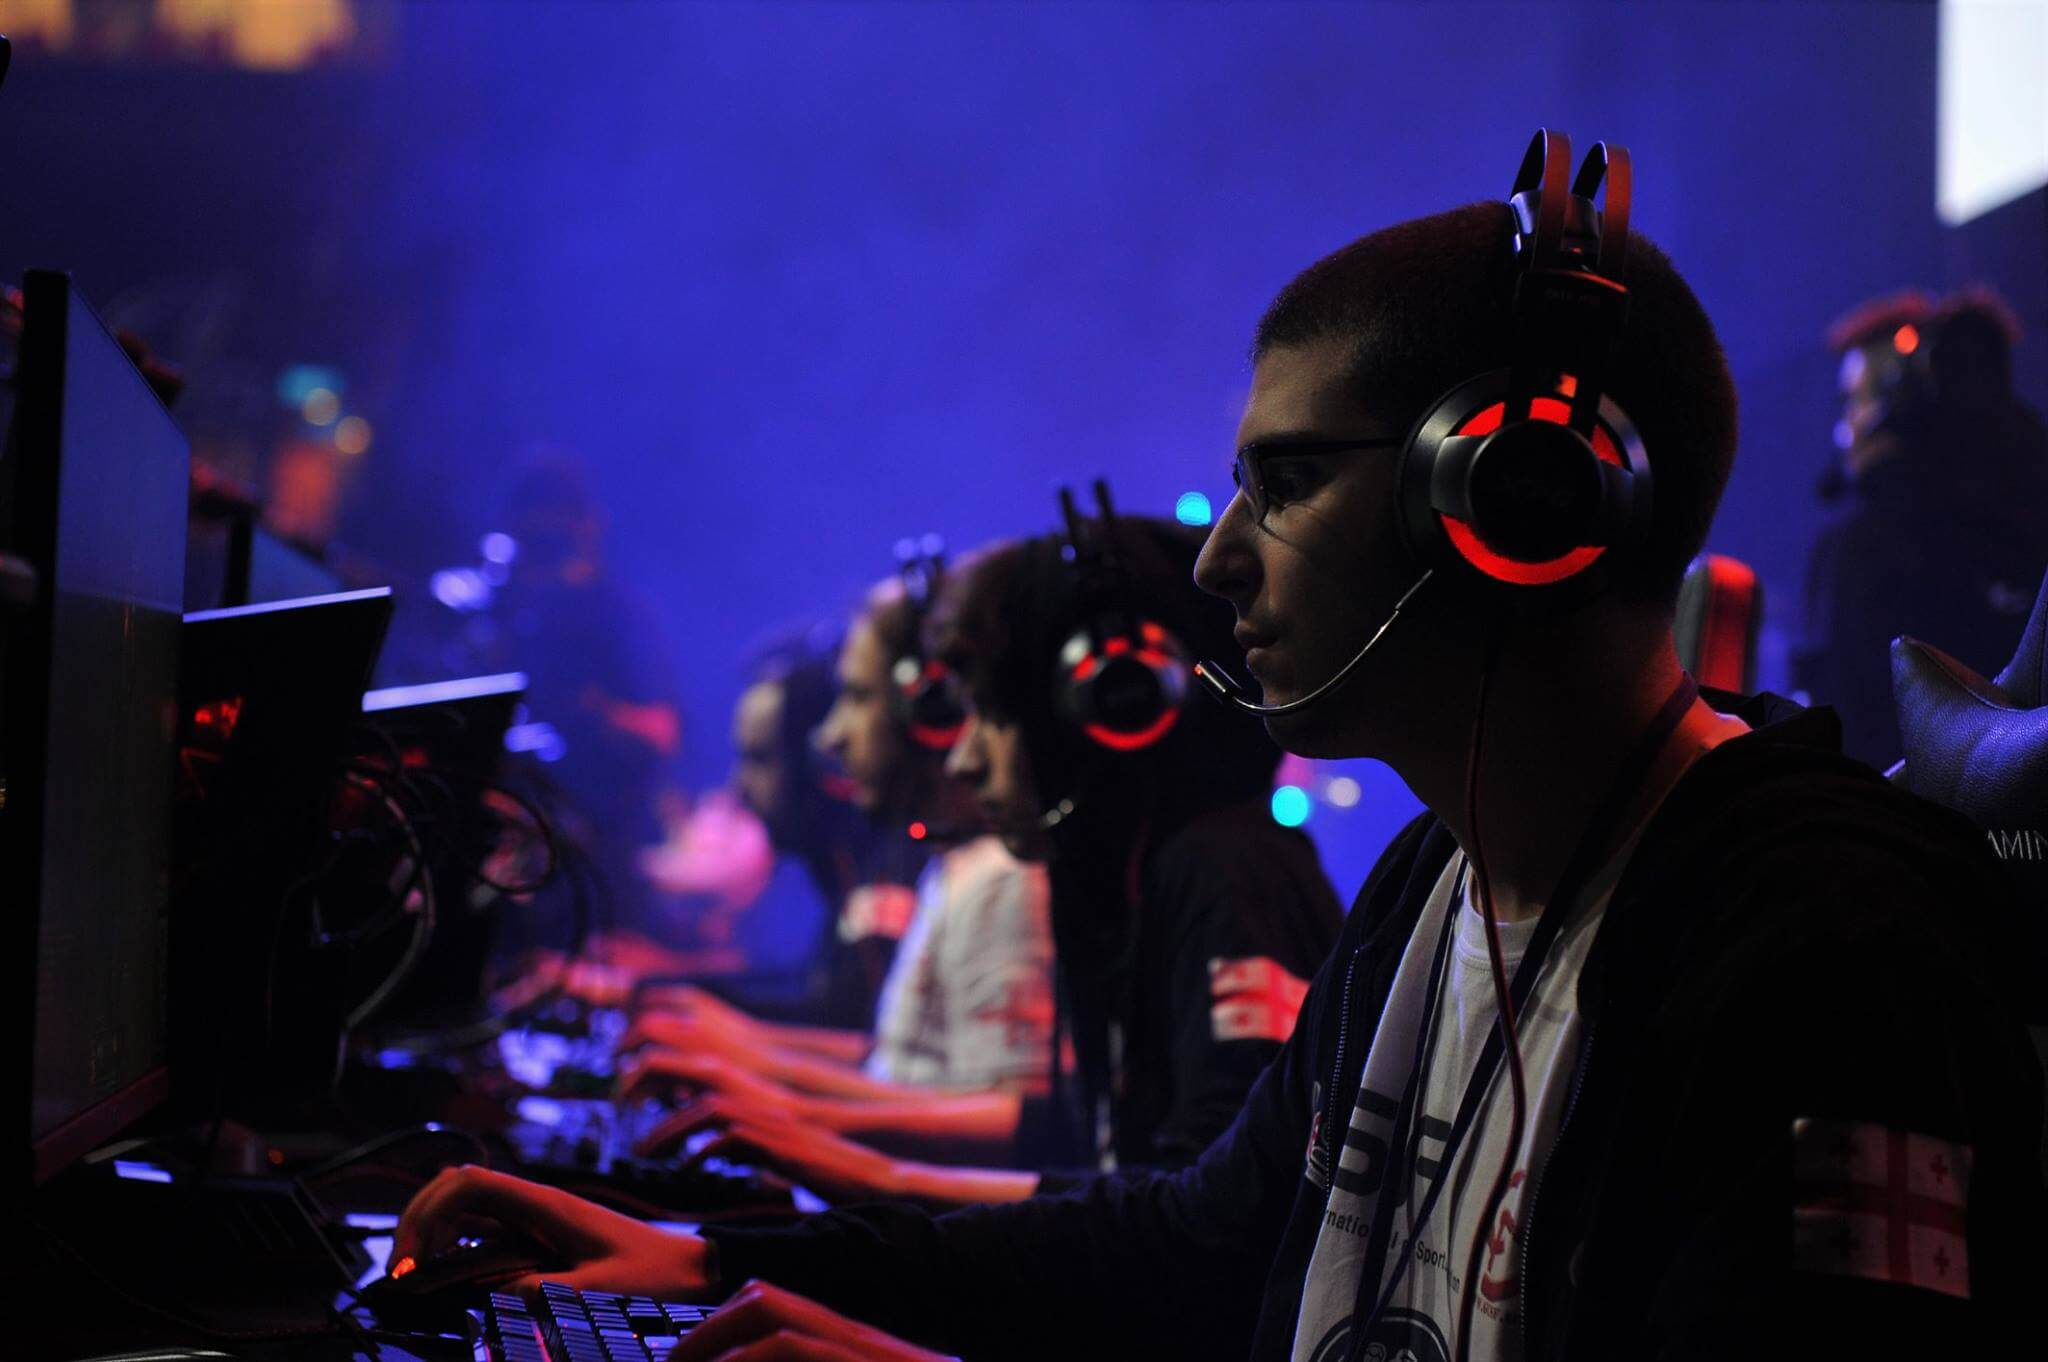 People on a stage for an esport event